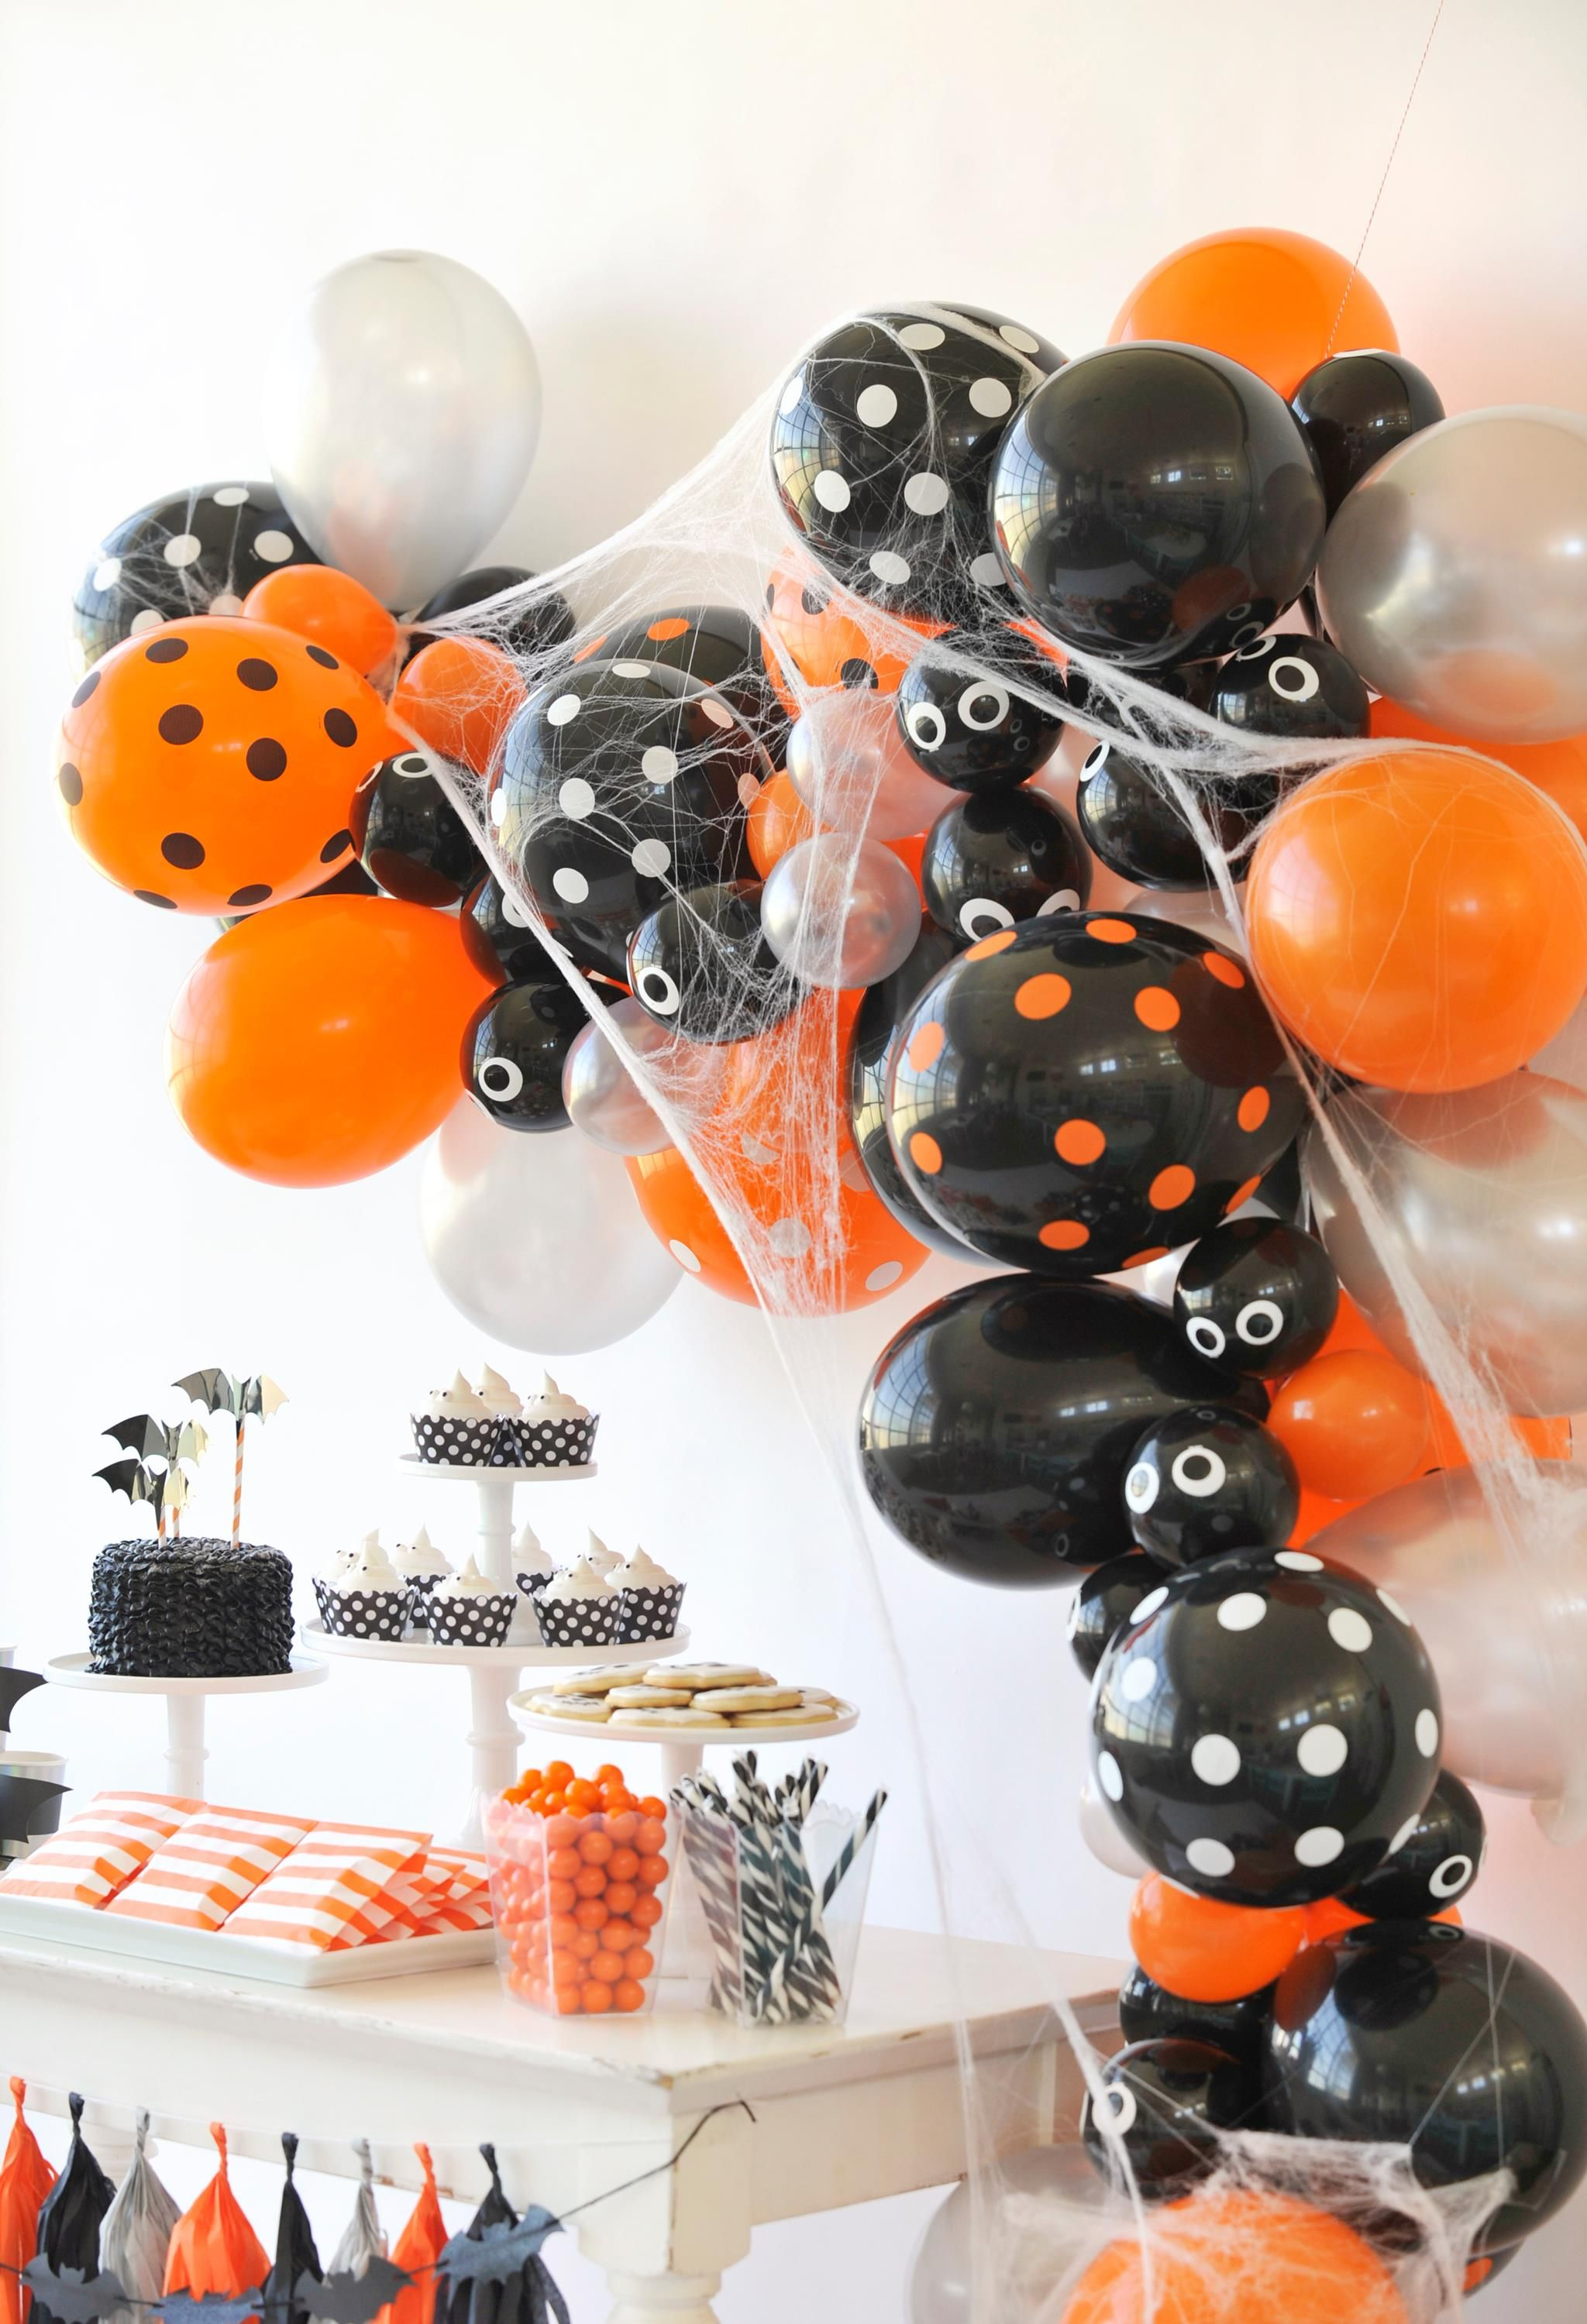 Pin by Mimi Stevenson on Party Ideas - Children Pinterest